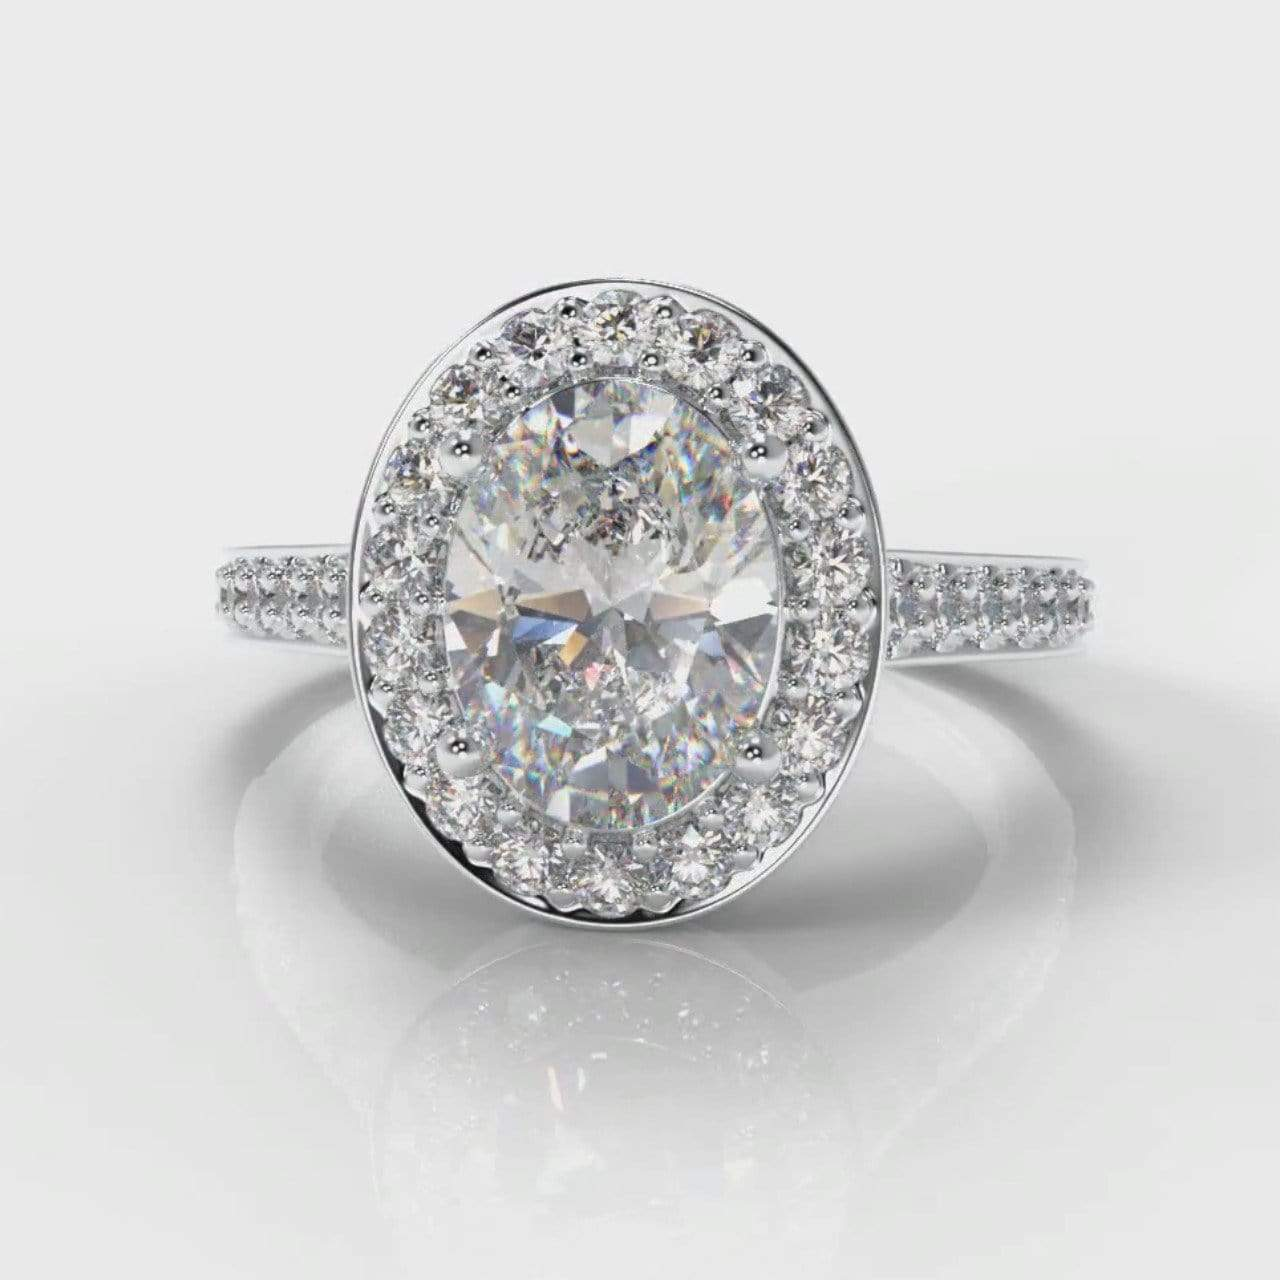 Pavé Halo Oval Lab Diamond Engagement Ring